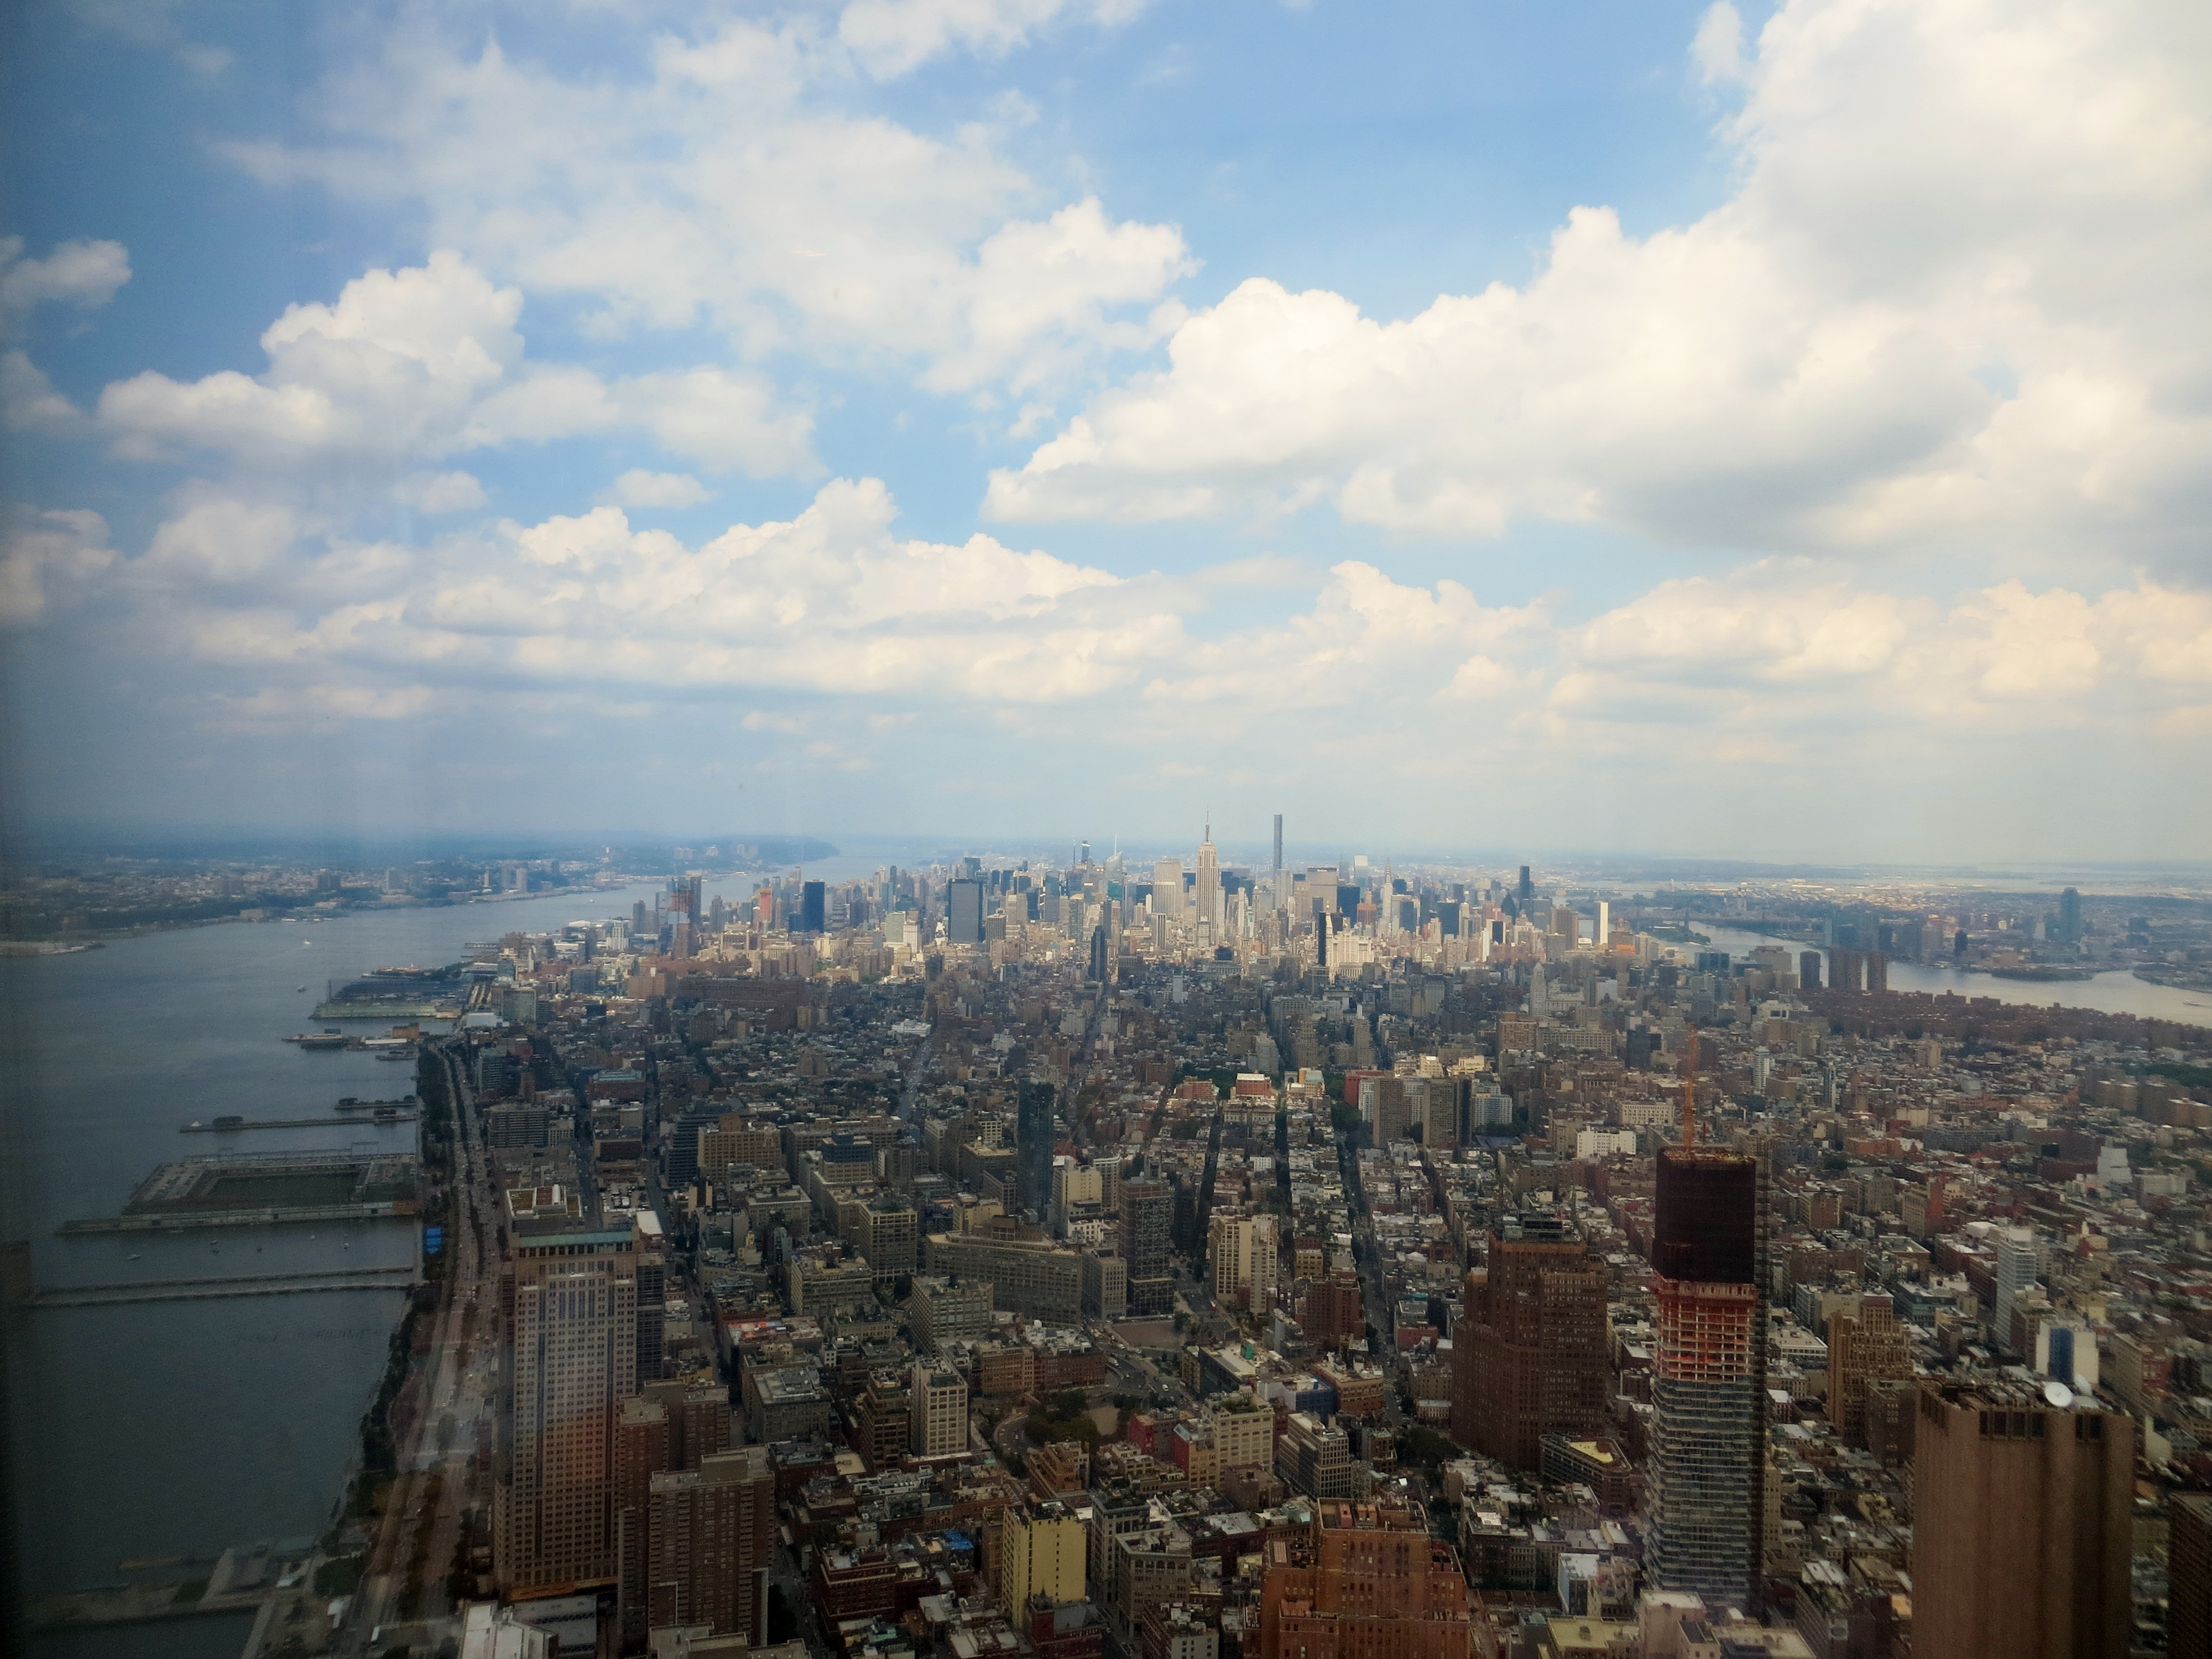 2015 NY 9-11 One Freedom Tower observatory 7.20 Last 453